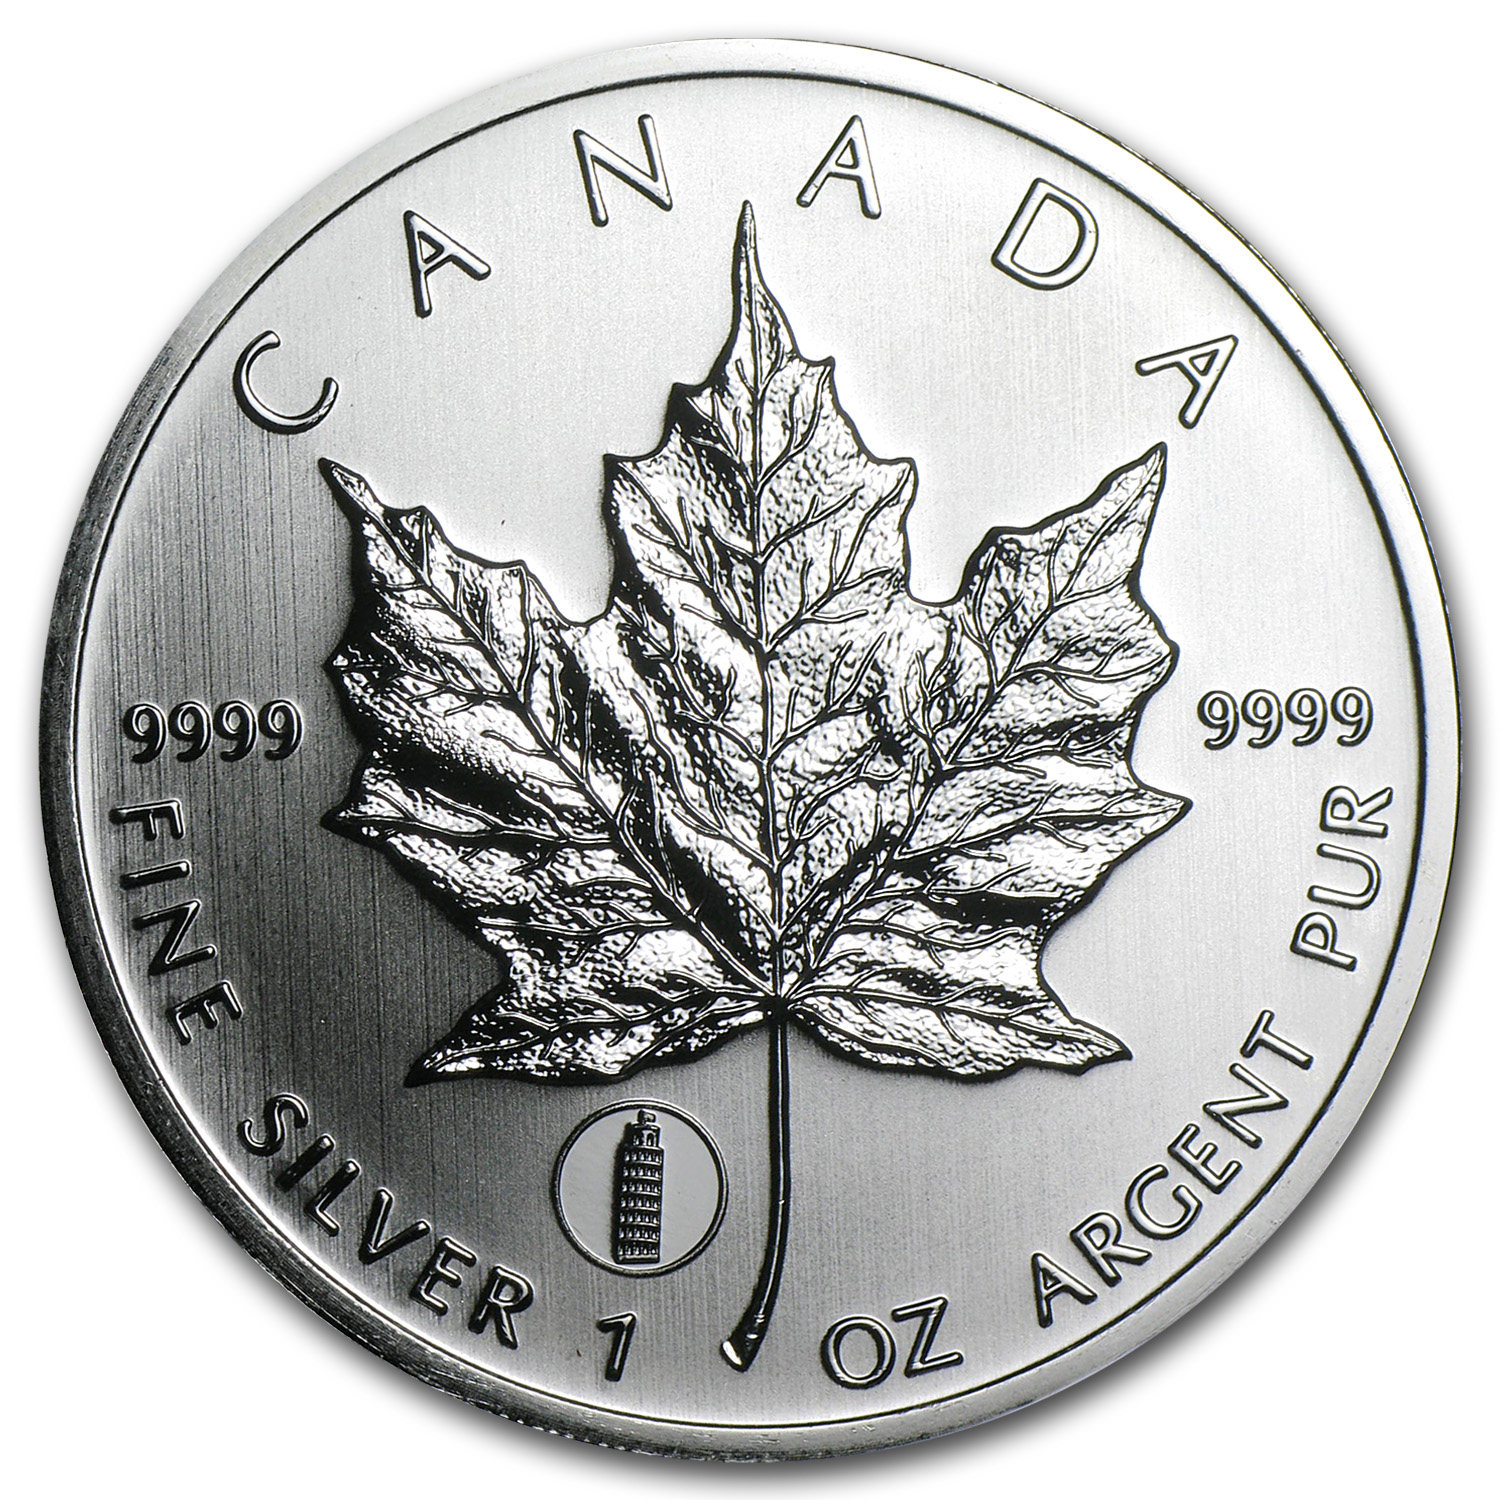 2012 Canada 1 oz Silver Maple Leaf Leaning Tower of Pisa Privy